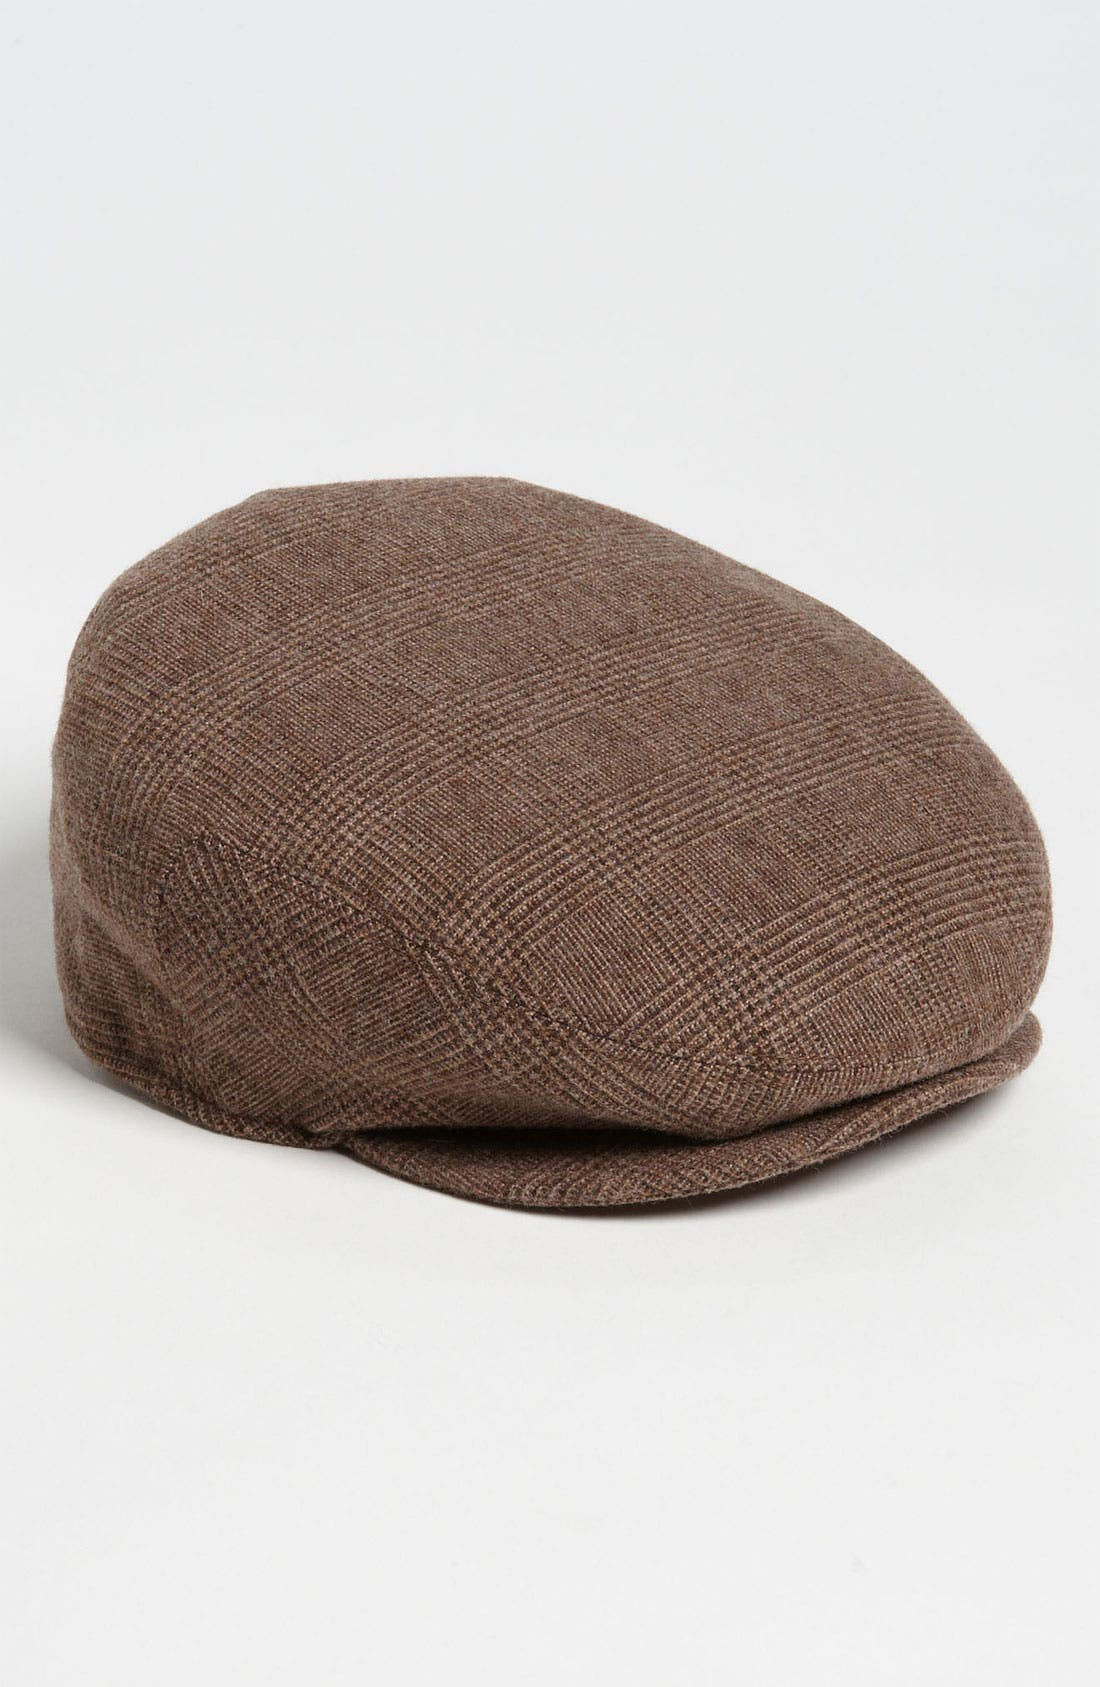 Alternate Image 1 Selected - Brooks Brothers 'Ivy' Tweed Cap